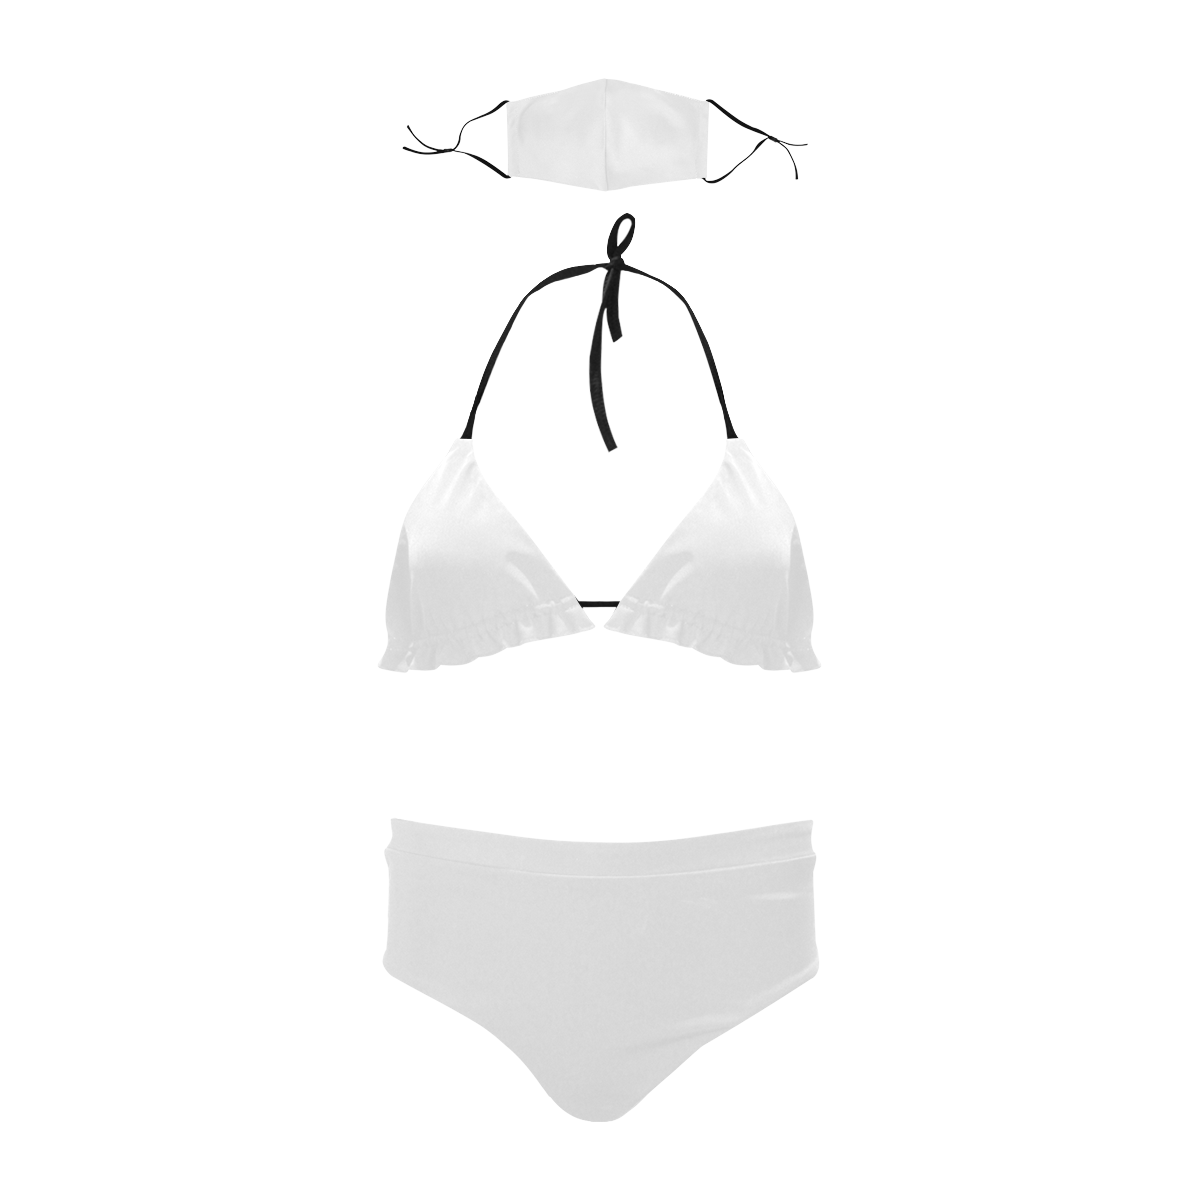 Stringy Selvedge Bikini Set with Mouth Mask (S11)